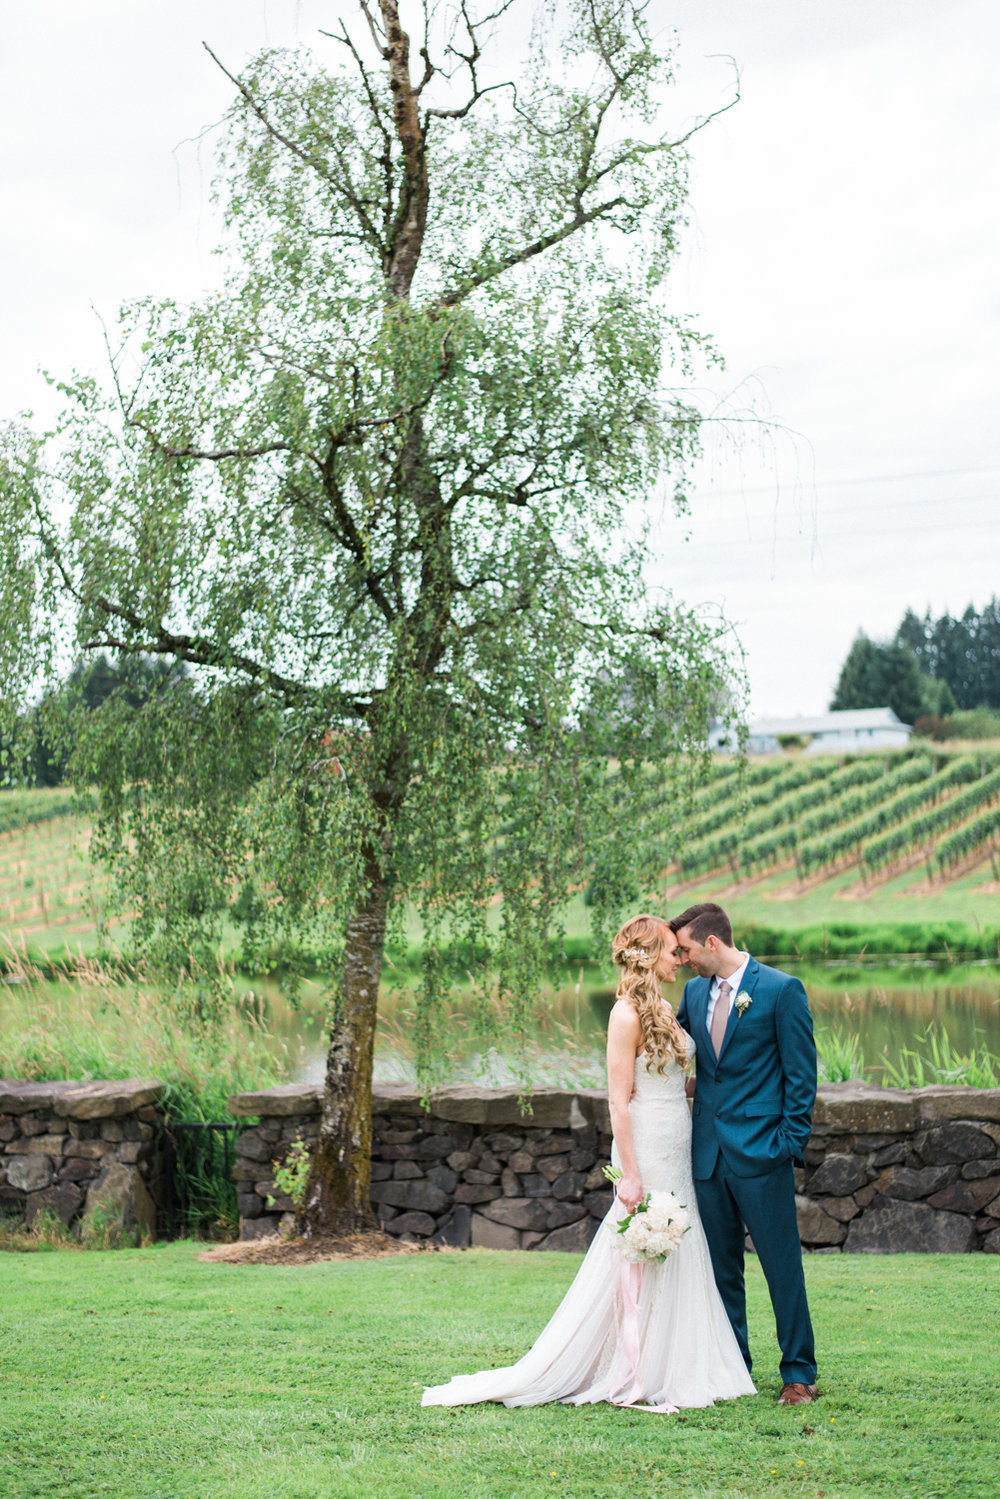 portland-wedding-photography-bethany-vineyard-shelley-marie-photo-008.jpg